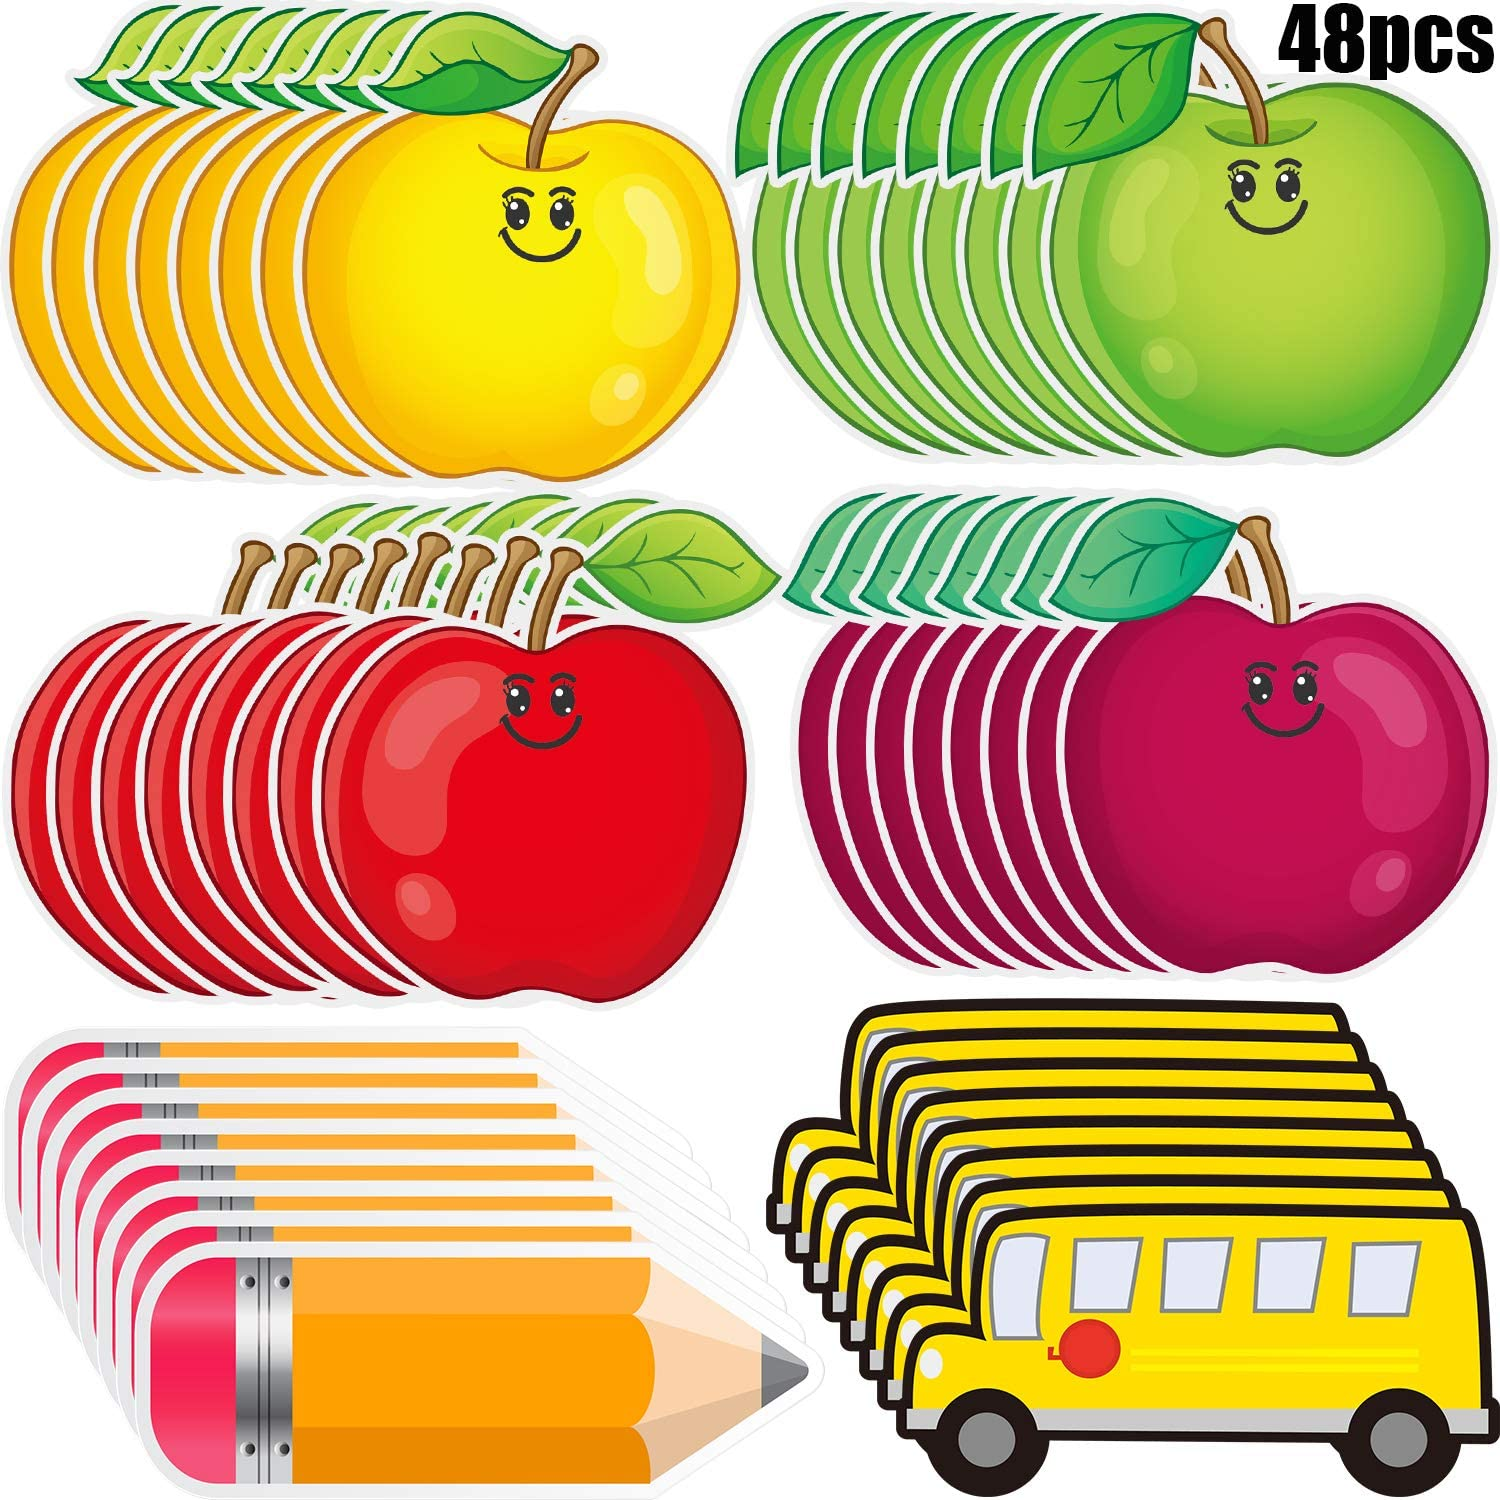 48 Pieces Fruit Cut-Outs Chunky Pencils Cut-Outs School Bus Accents Colorful Bulletin Board Cutouts for Classroom Decor School Playroom Baby Nursery Kids Bedroom Art Studio